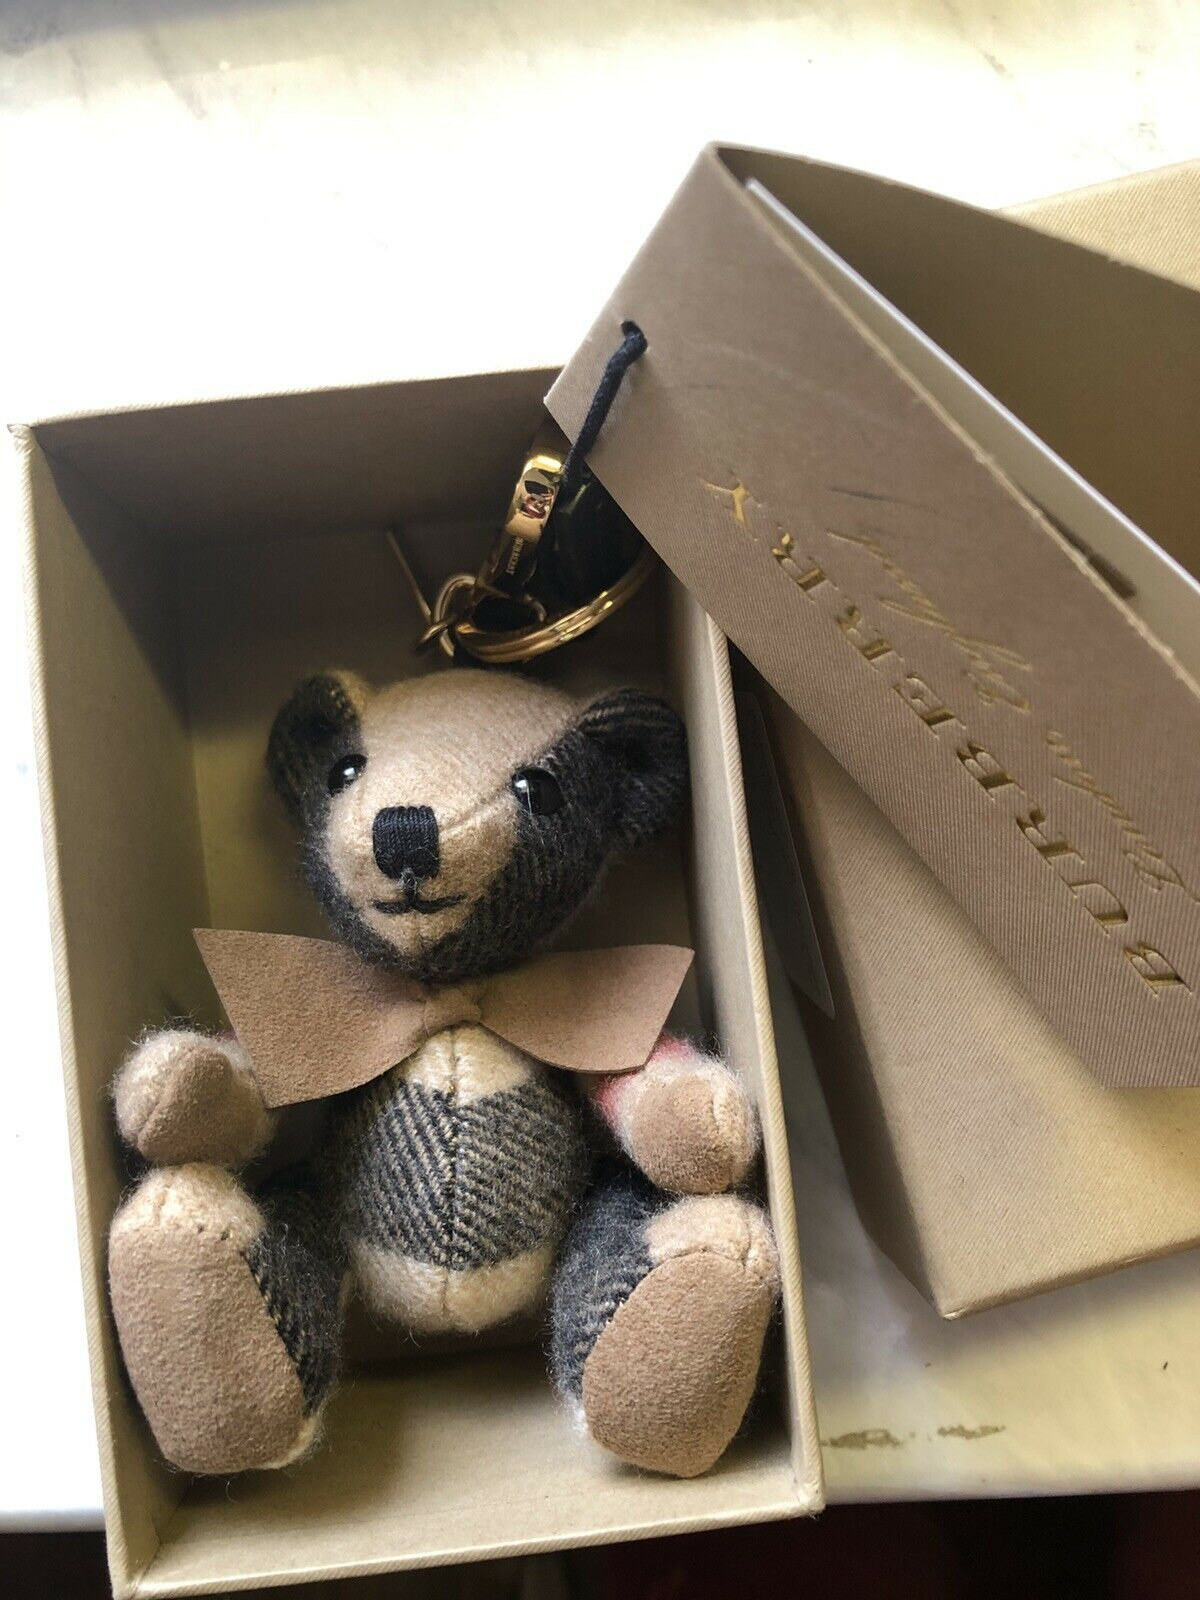 wholesale dealer low cost best place NWT Auth Burberry Thomas Check Plaid Teddy Bear Key Chain Bag ...